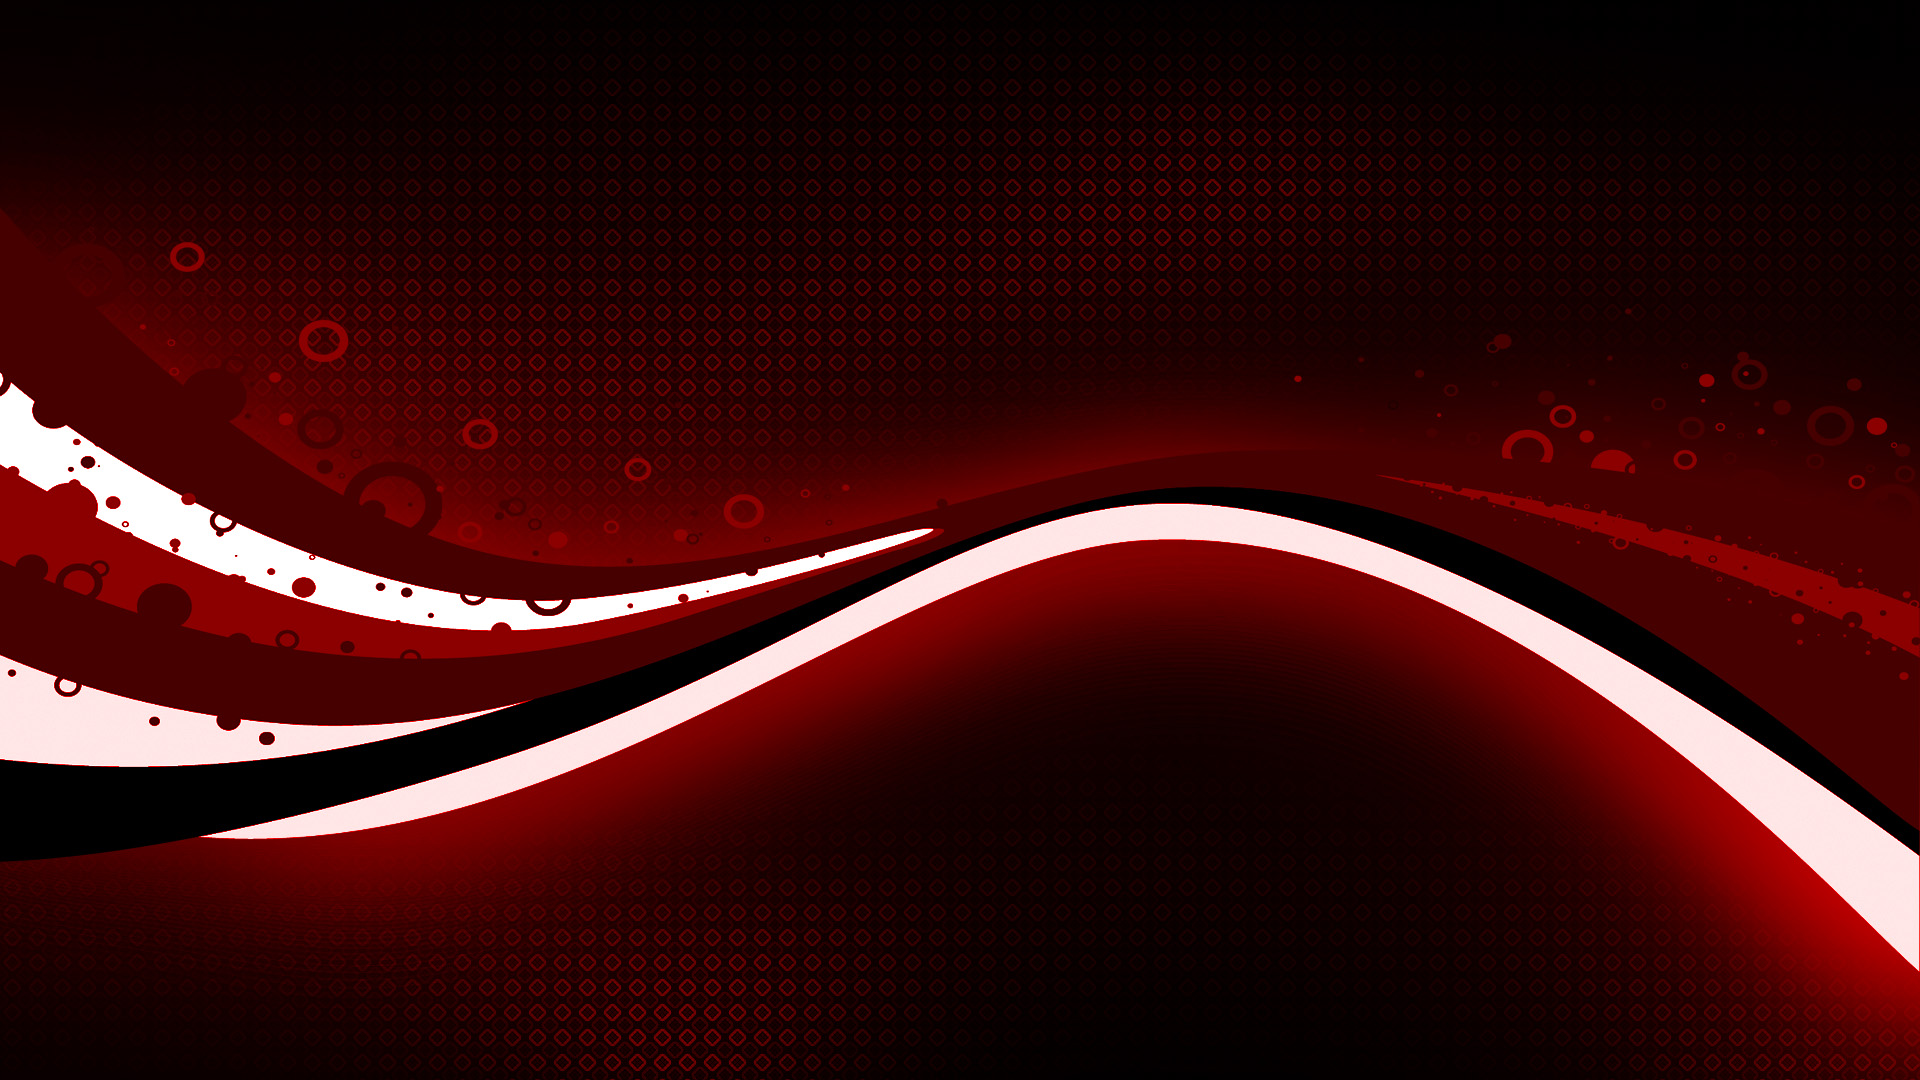 Red Wave Wallpapers